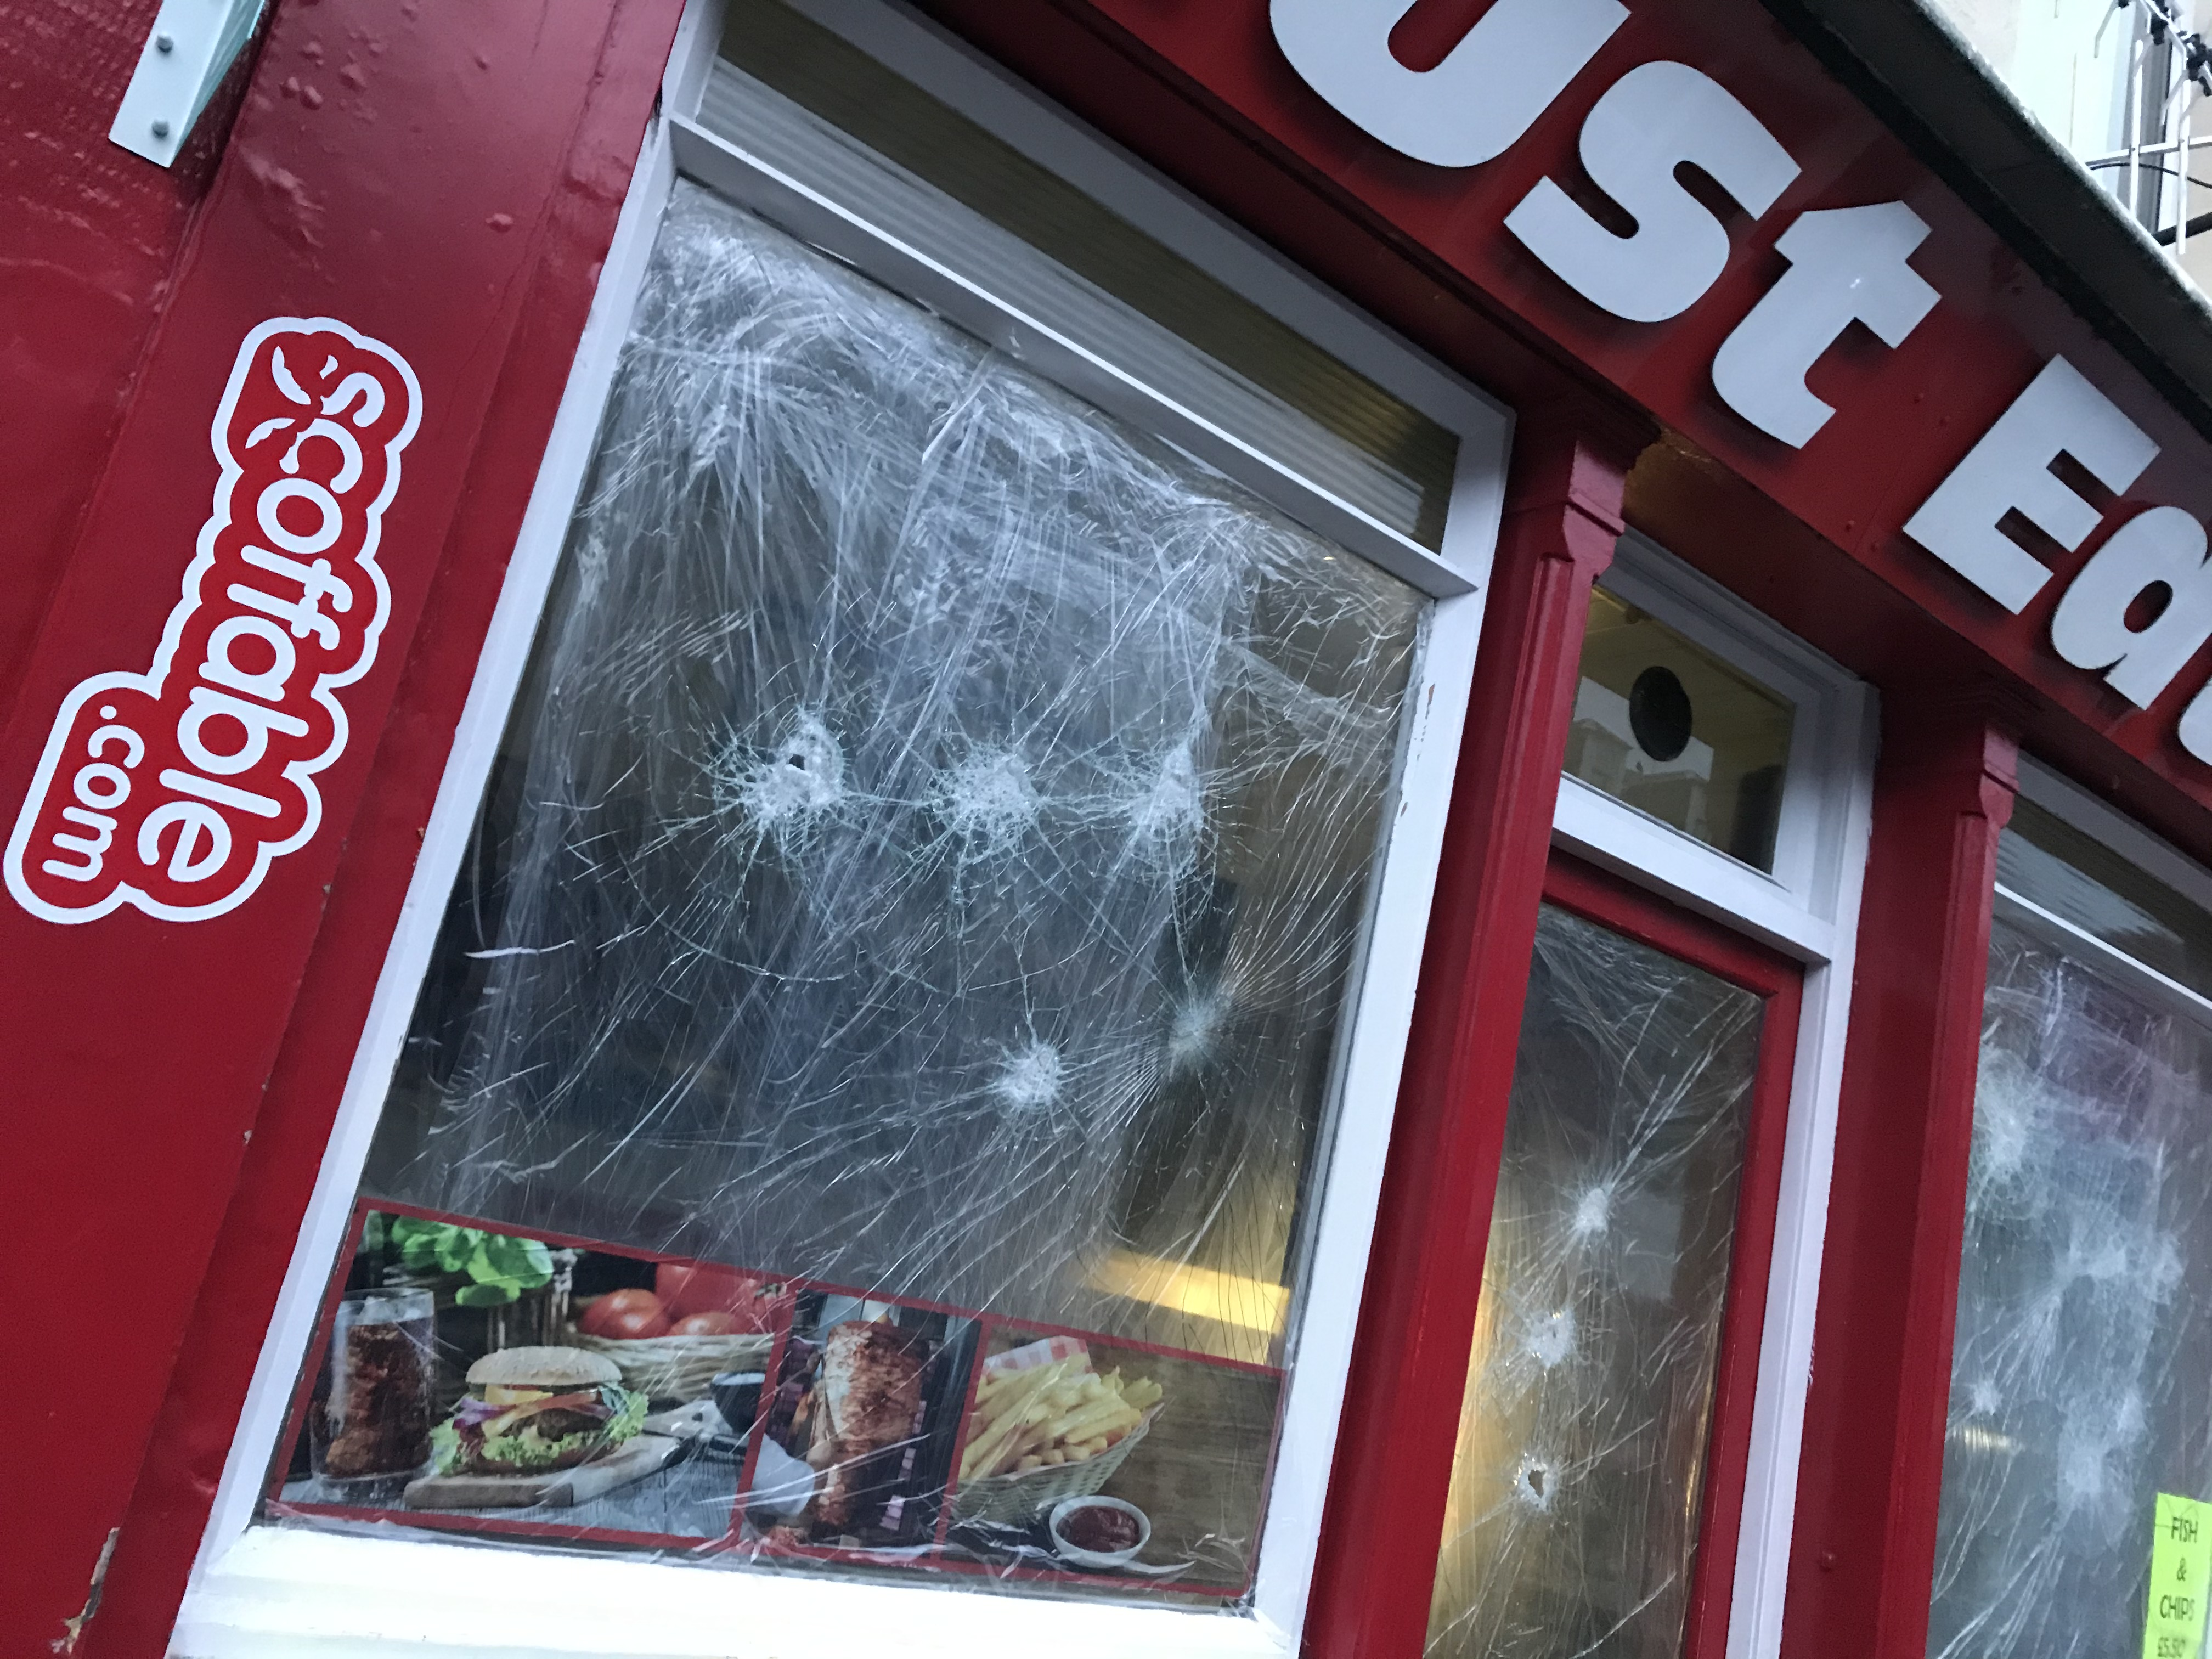 Perth Takeaways Windows Smashed Again After Owners Pay